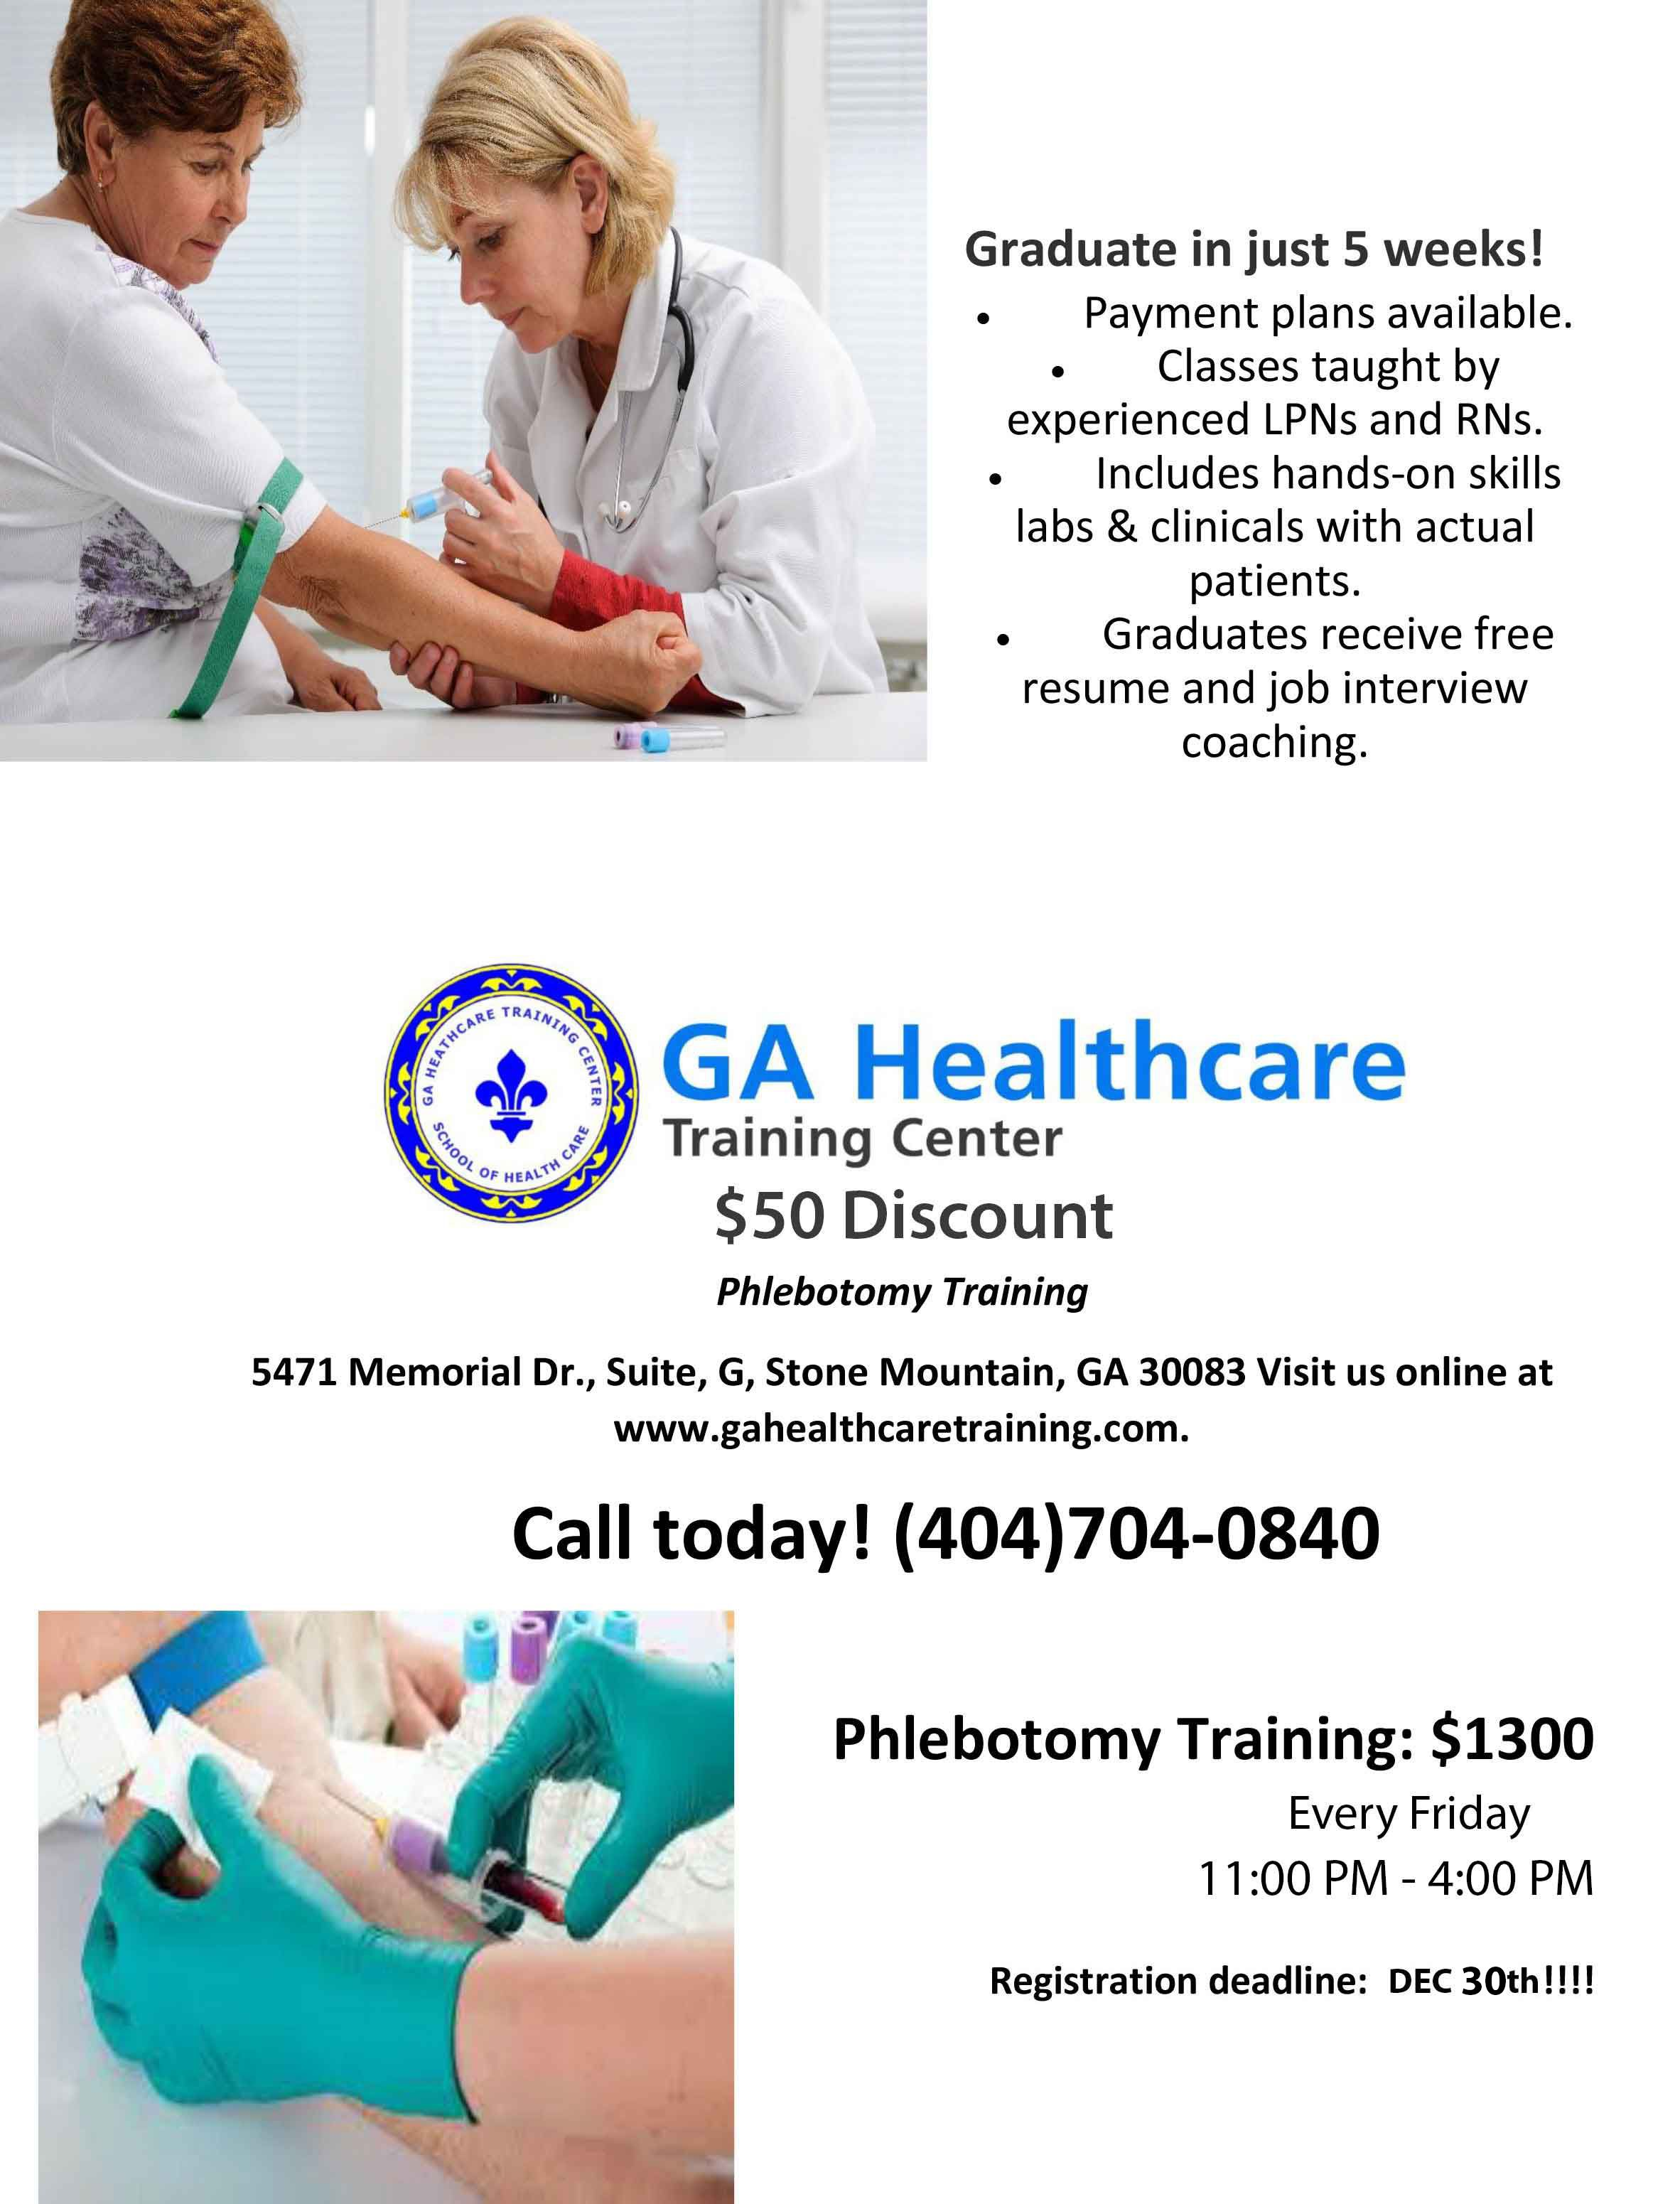 Our holiday gift to you 50 discount phlebotomy training website our holiday gift to you 50 discount phlebotomy training website gahealthcaretraining 1betcityfo Images